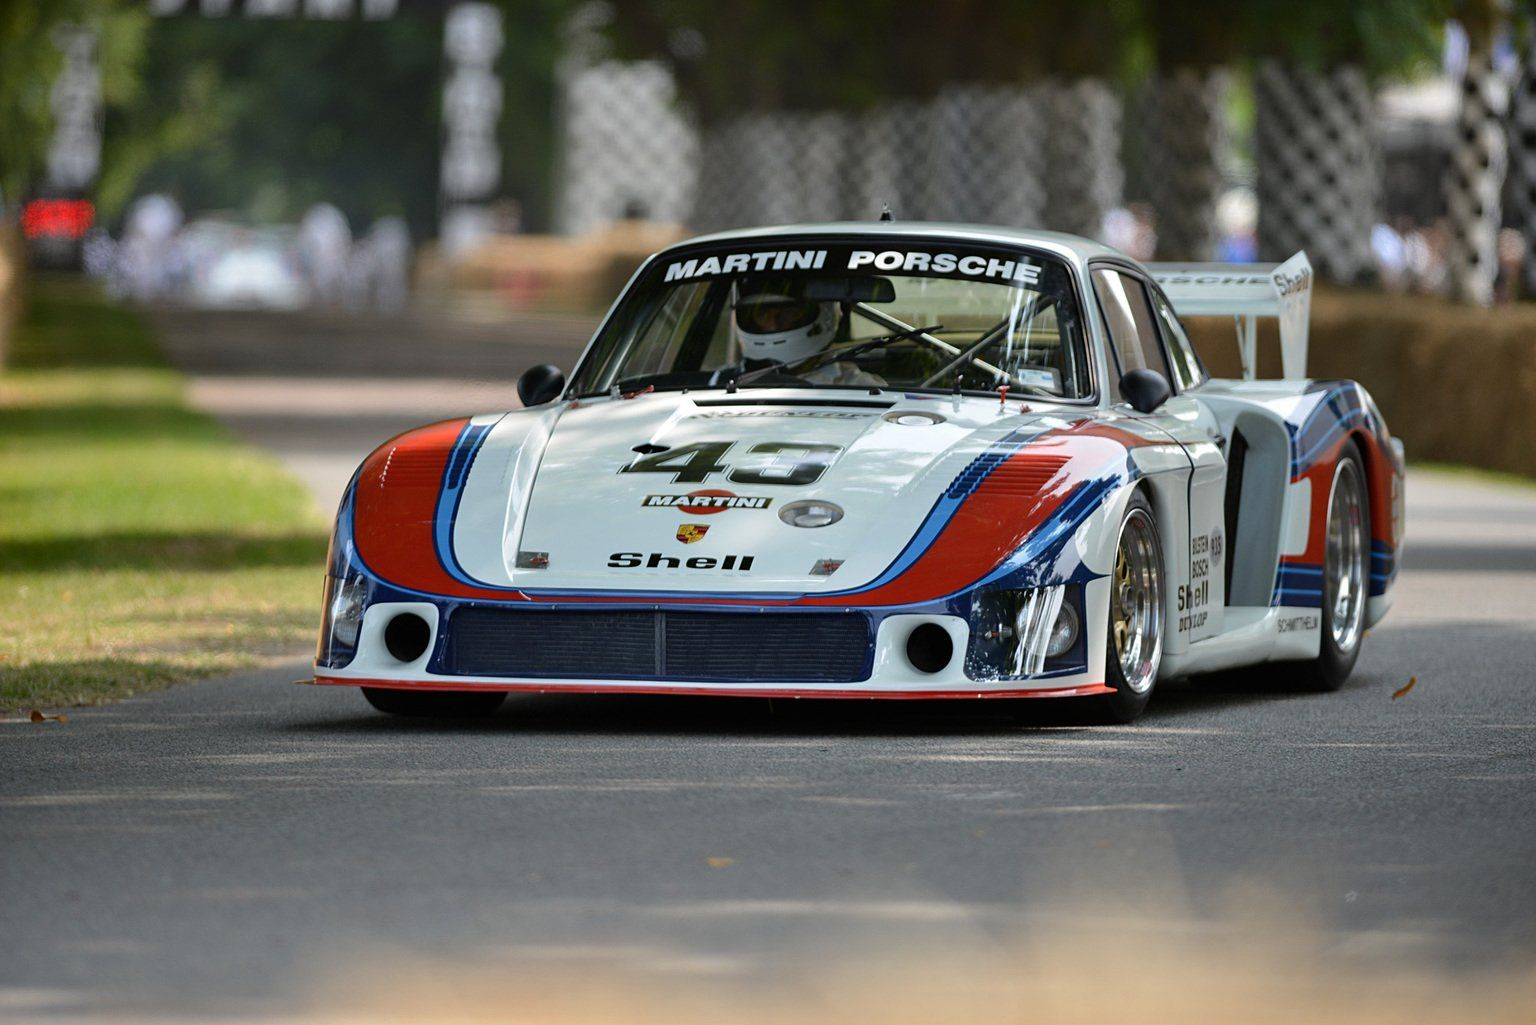 Race Car Classic Vehicle Racing Porsche Germany Le Mans Lmp1